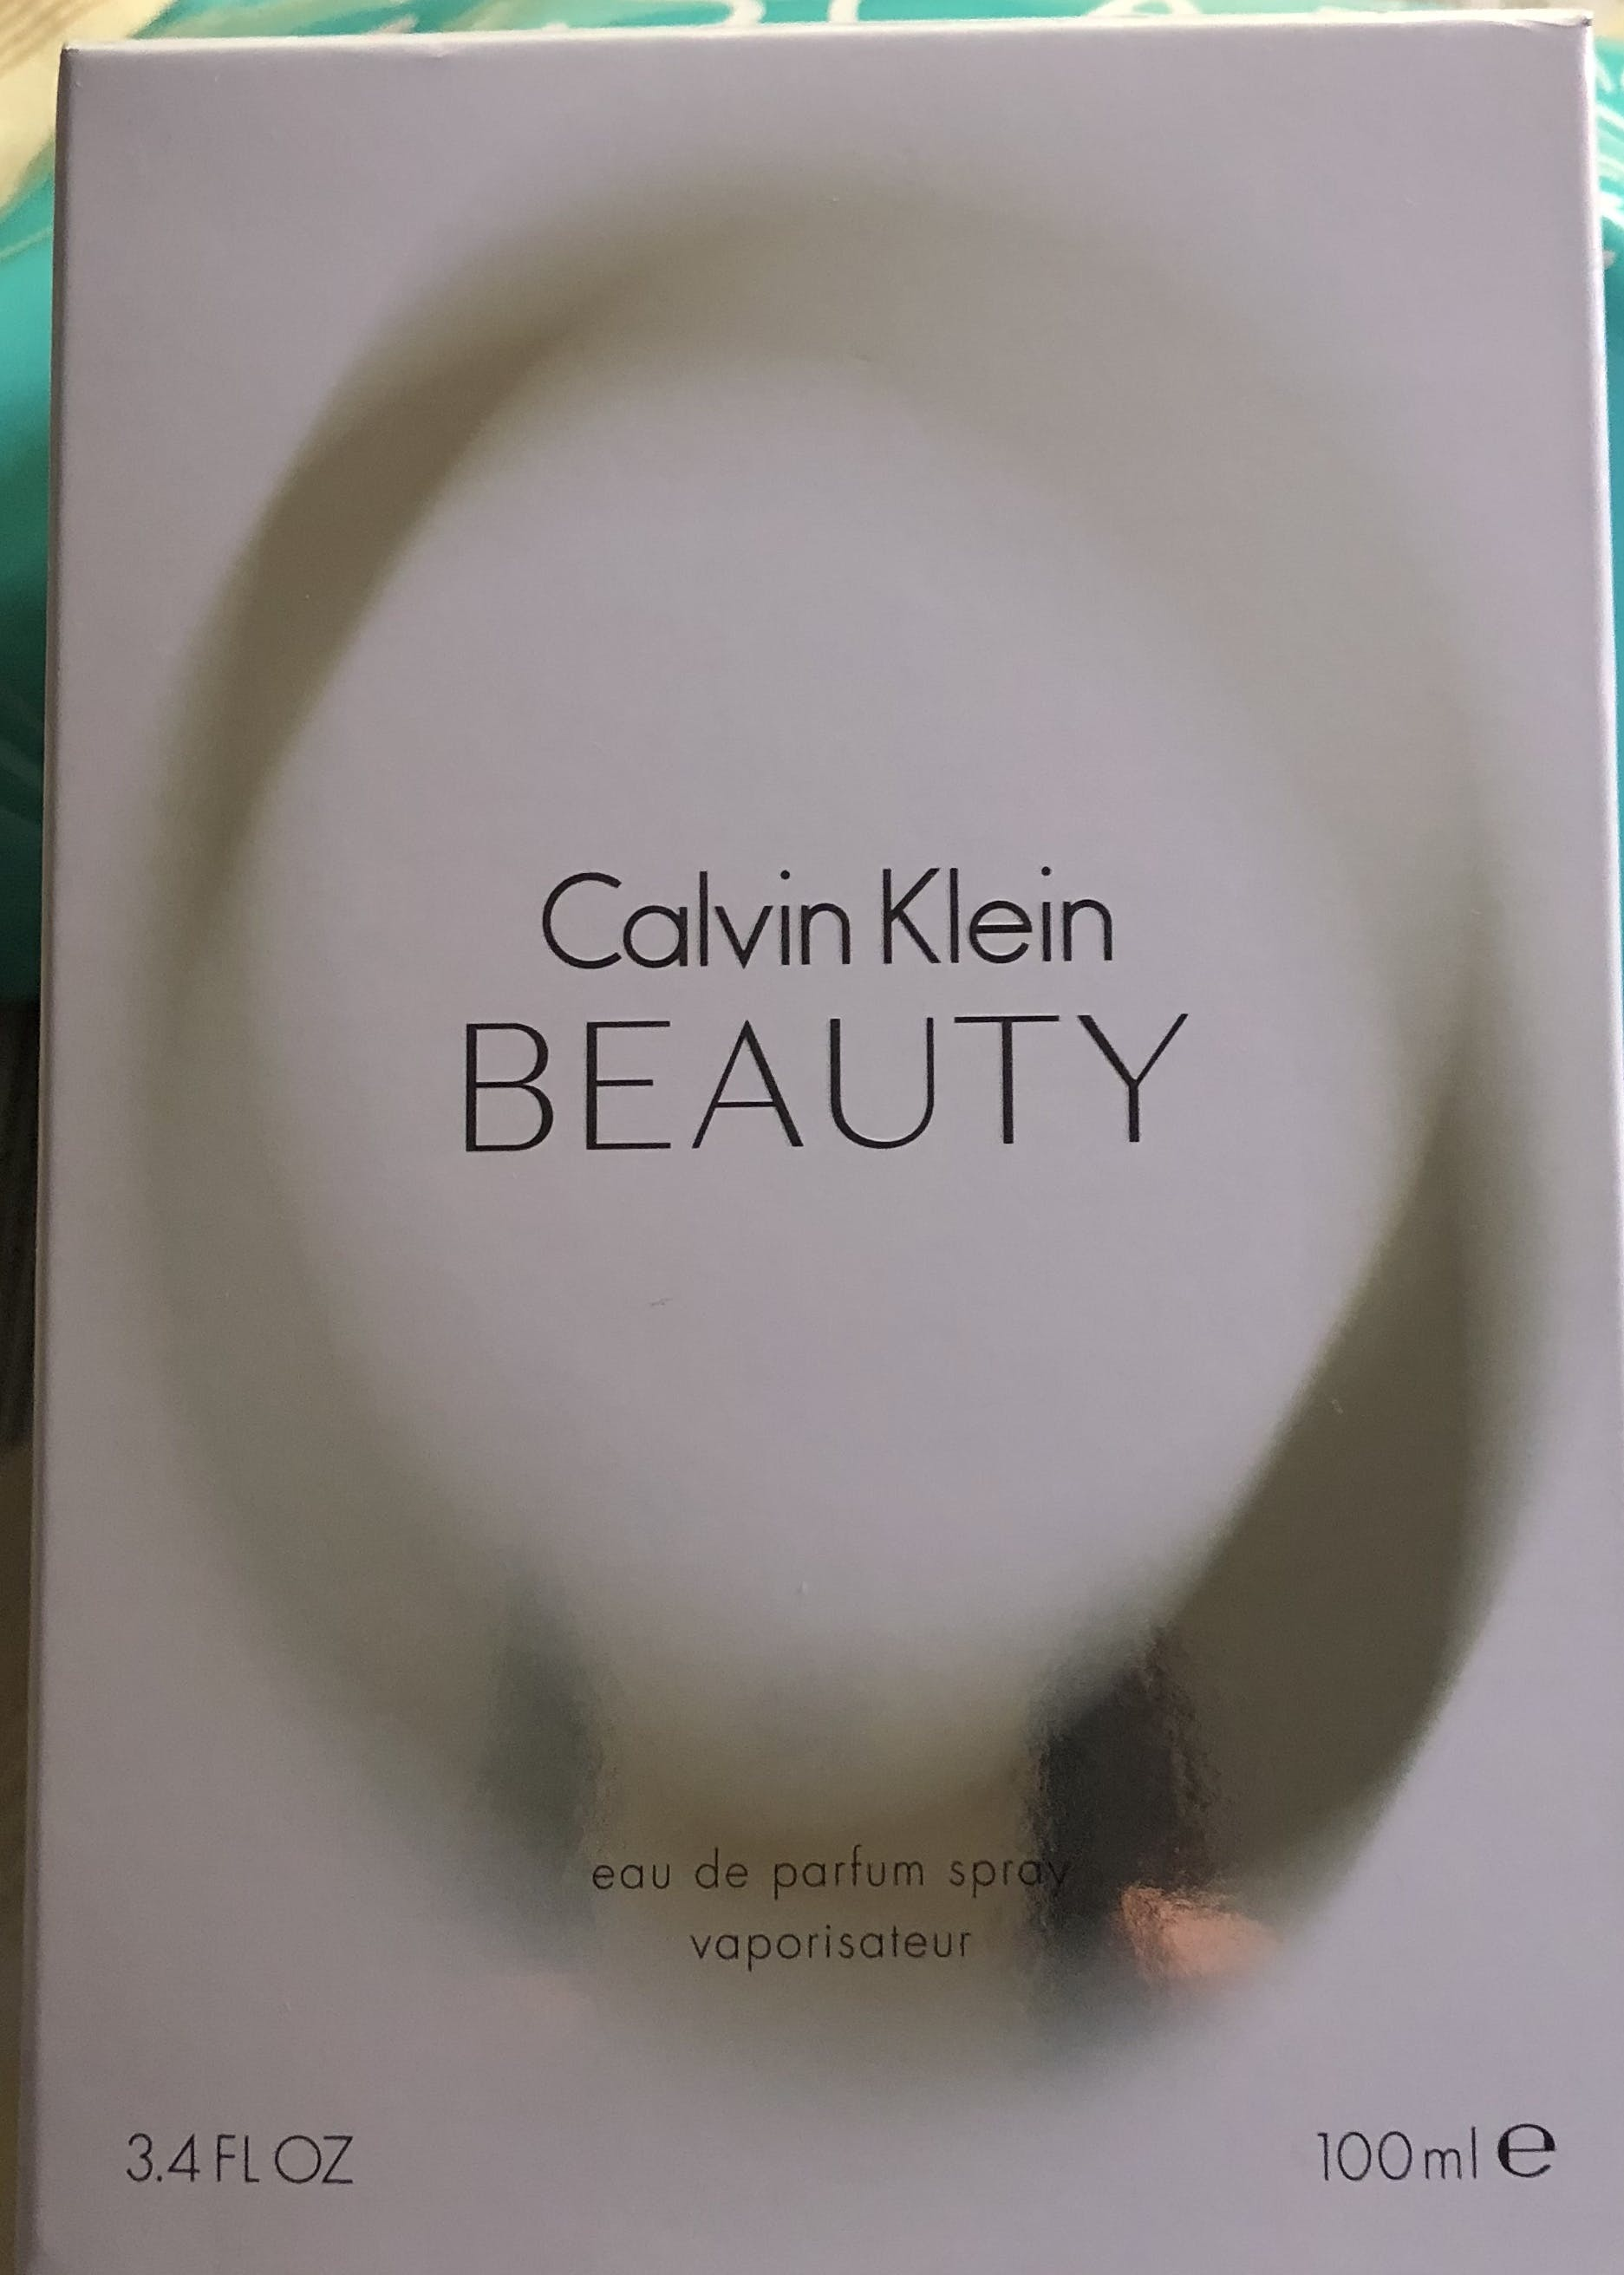 Calvin Klein Beauty 100ml Perfume Philippines Parfum Original For Women User Picture